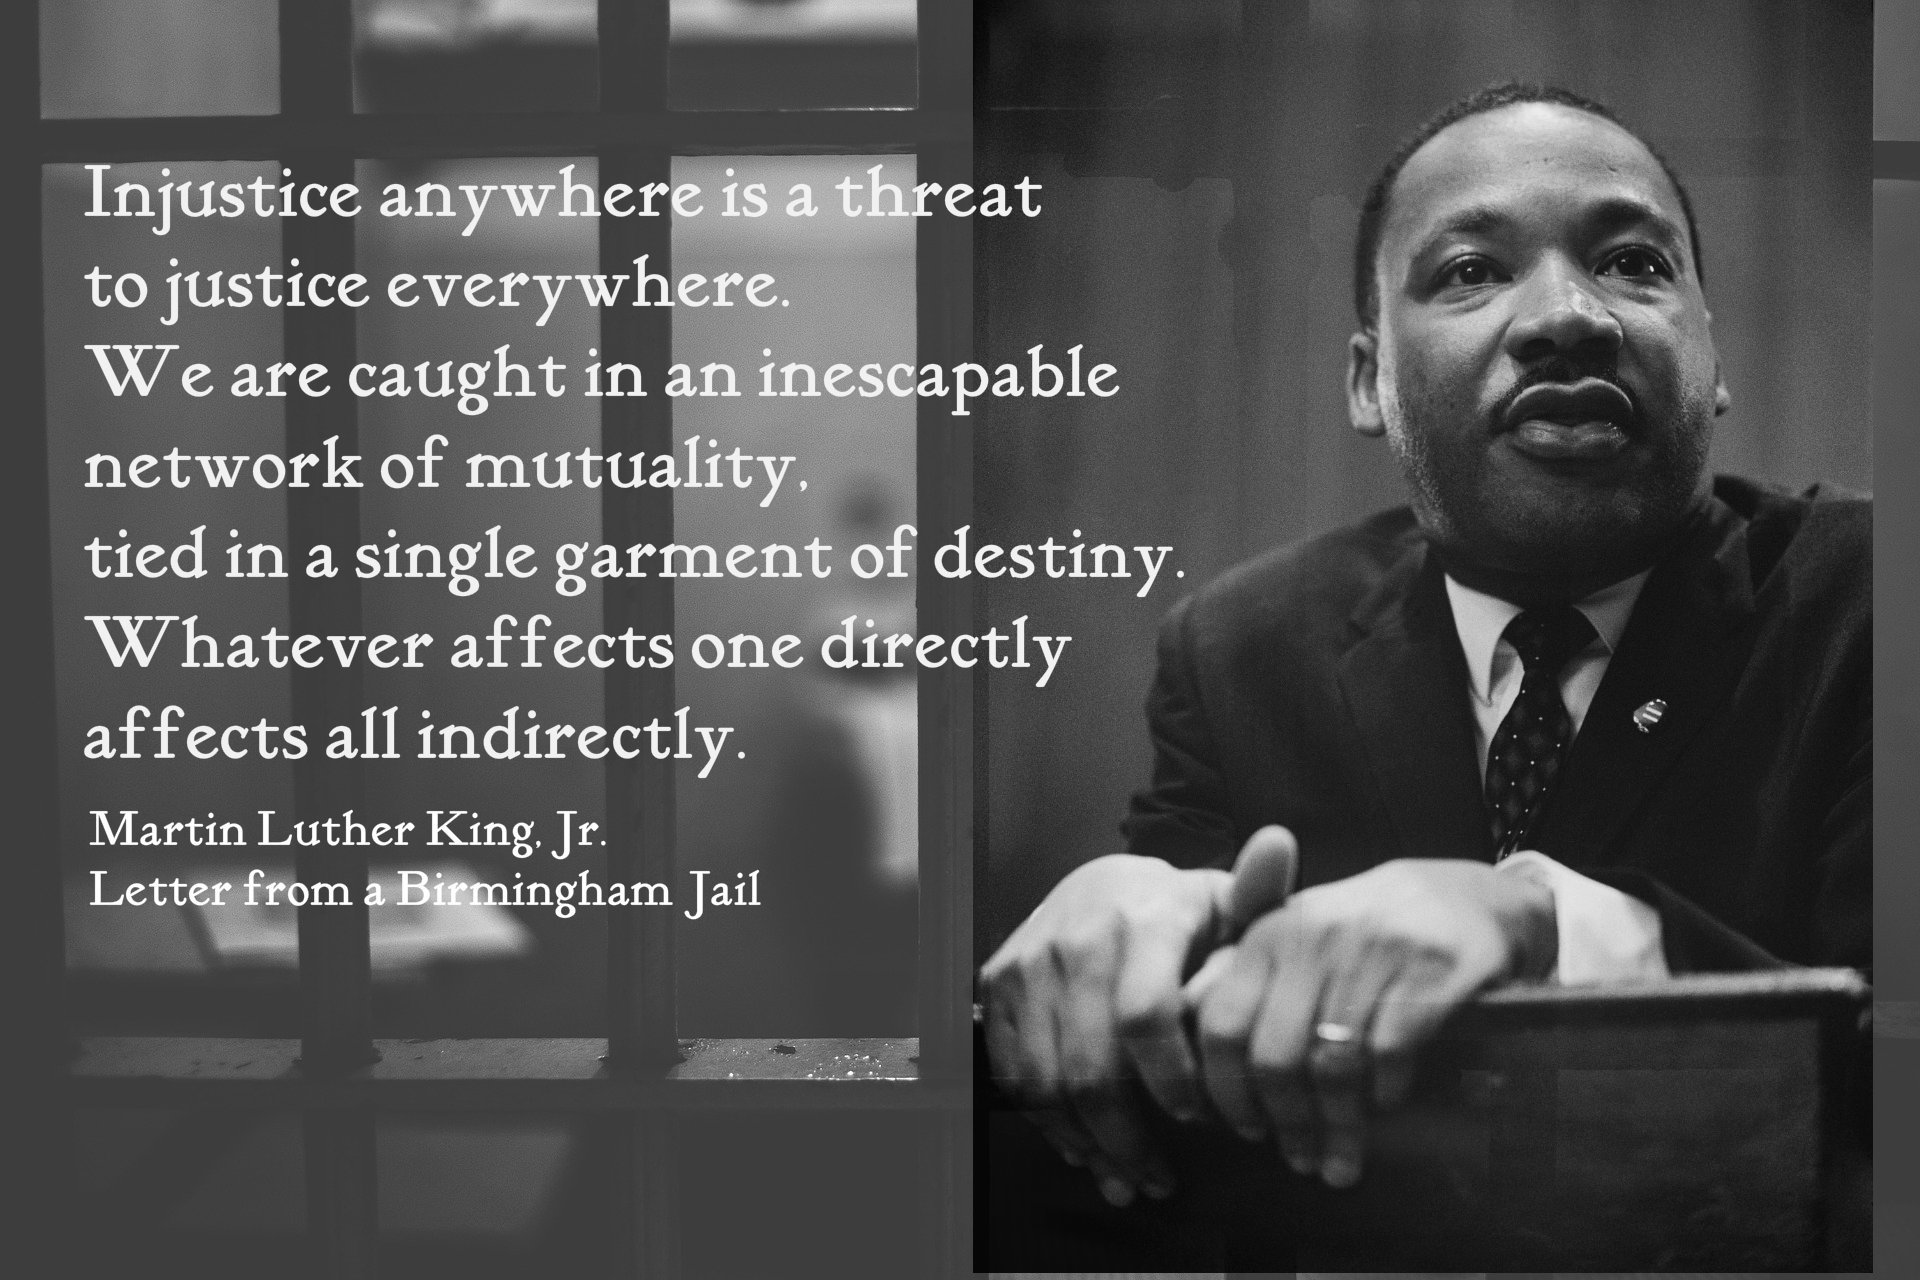 Injustice anywhere is a threat to justice everywhere. We are caught in an inescapable network of mutuality, tied in a single garment of destiny. Whatever affects one directly affects all indirectly. Quote by Dr. Martin Luther King, Jr in his letter from a Birmingham Jail.